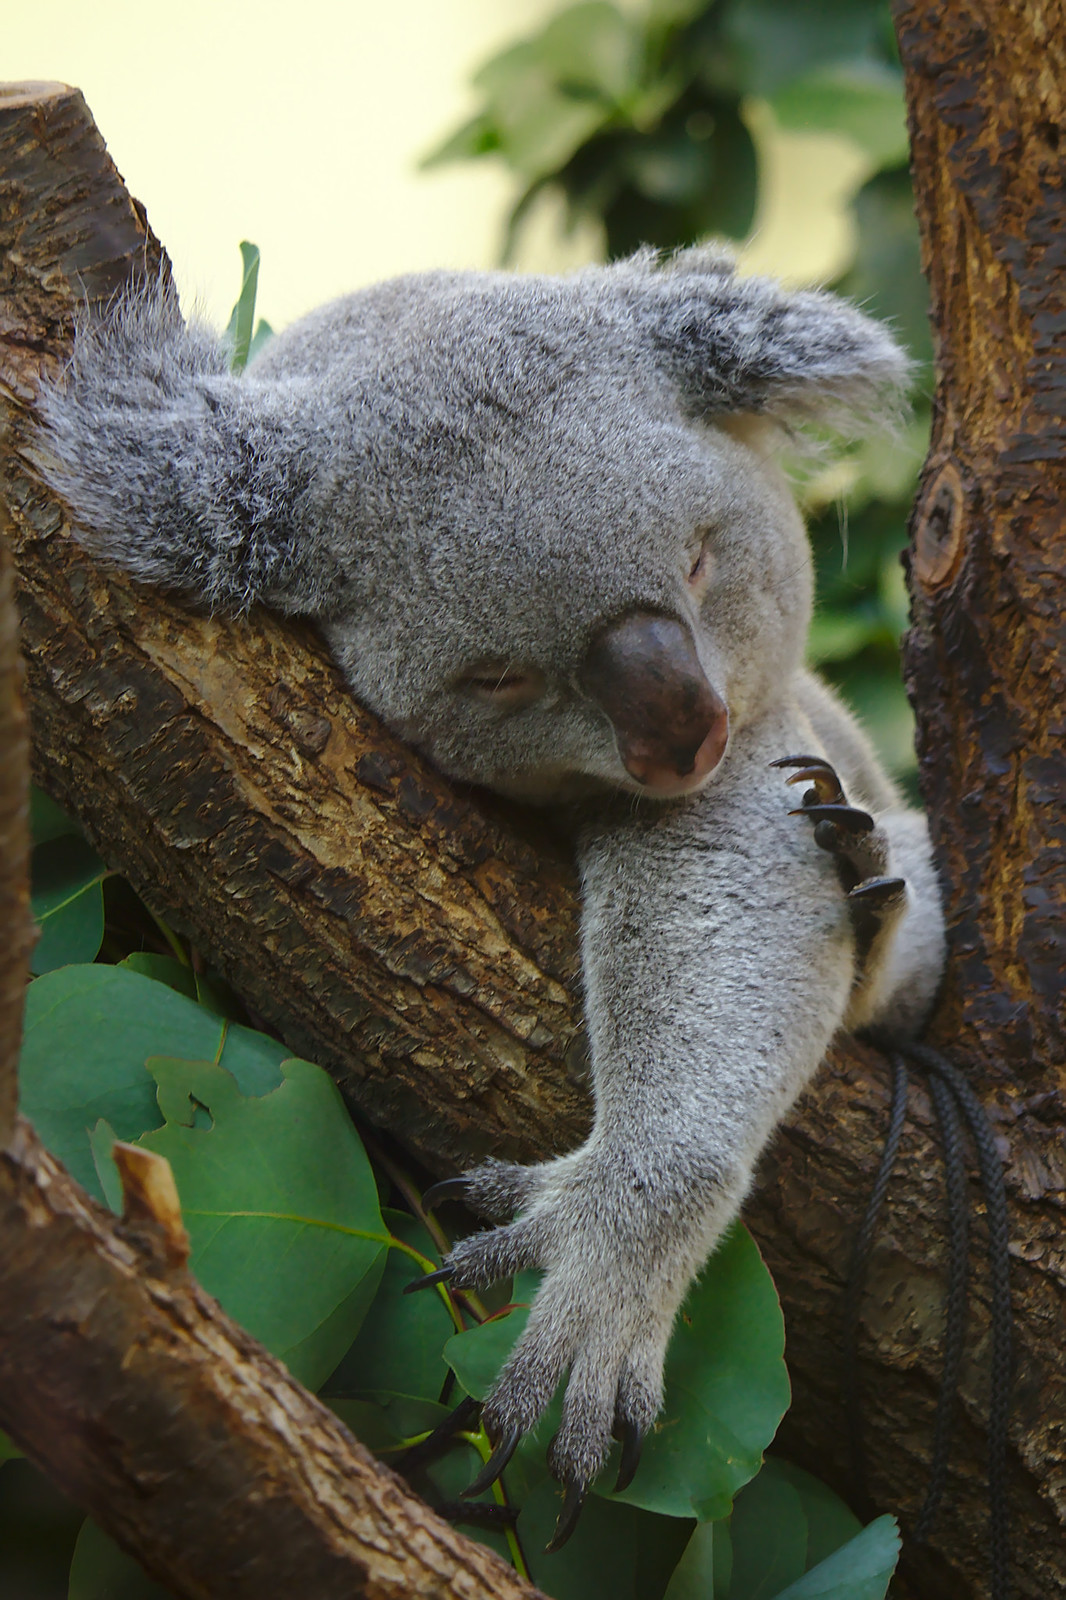 Koala sleeping at Tiergarten Schönbrunn